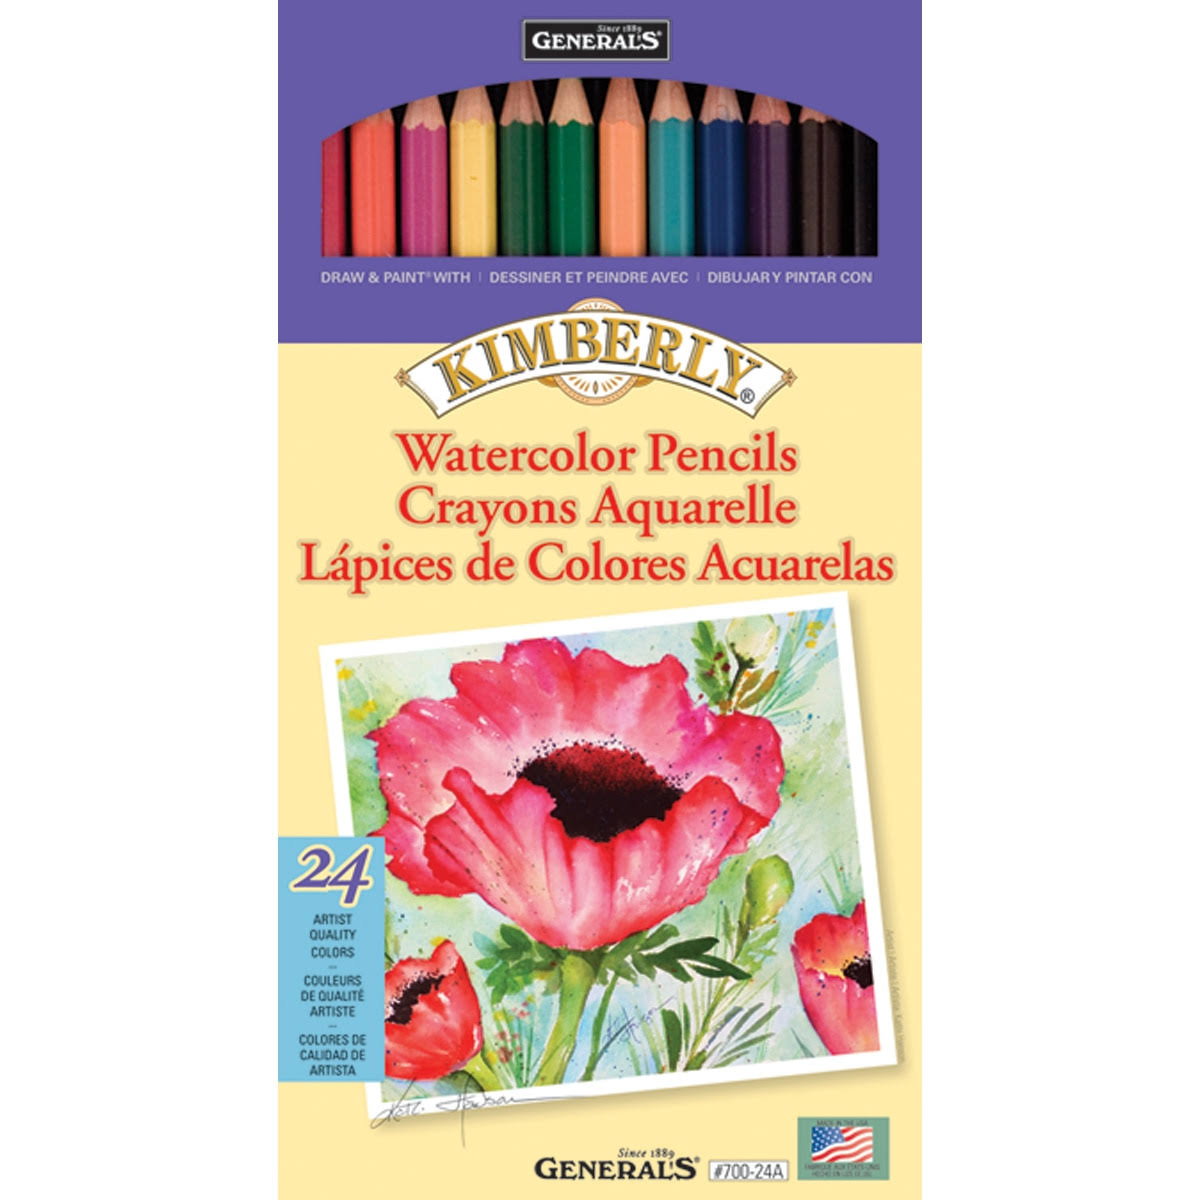 General Pencil Kimberly Watercolor Pencils - 24pk